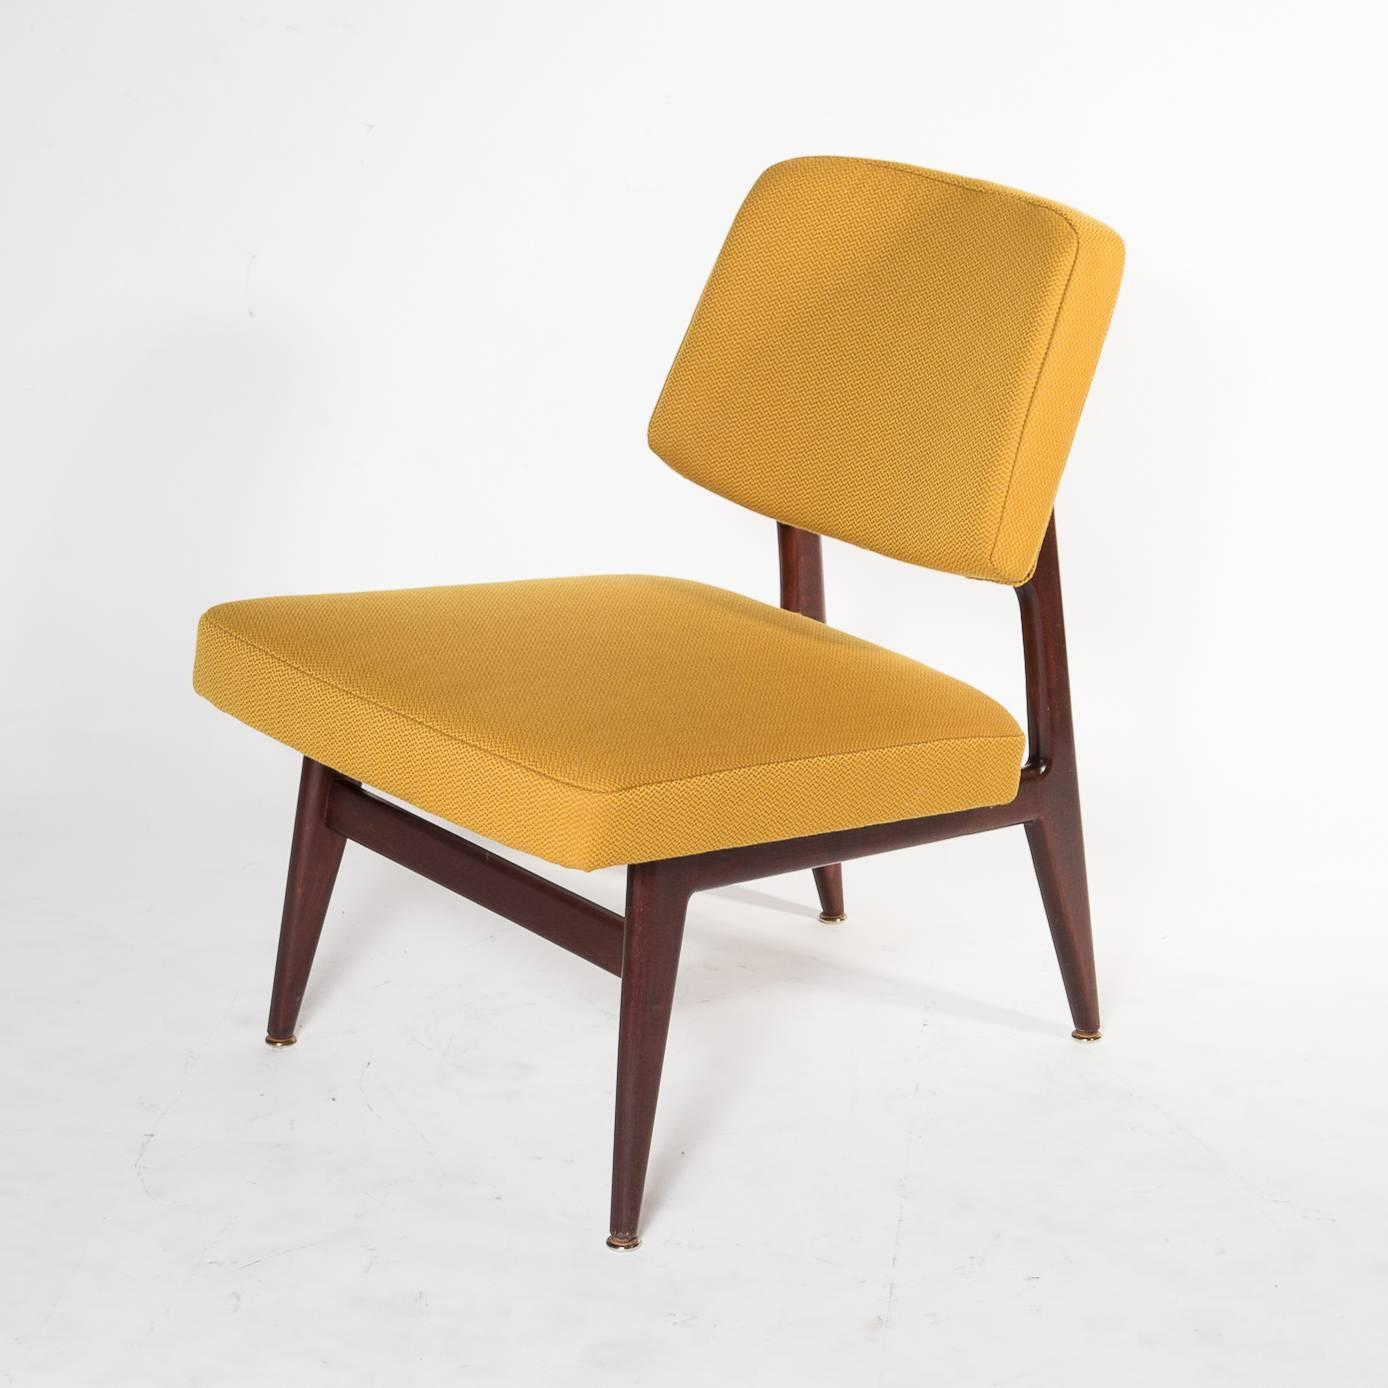 Lounge Sessel Thonet 3 Thonet No 681 Mid Century Design Chairs Designed 1958 By Eberle Germany 1965